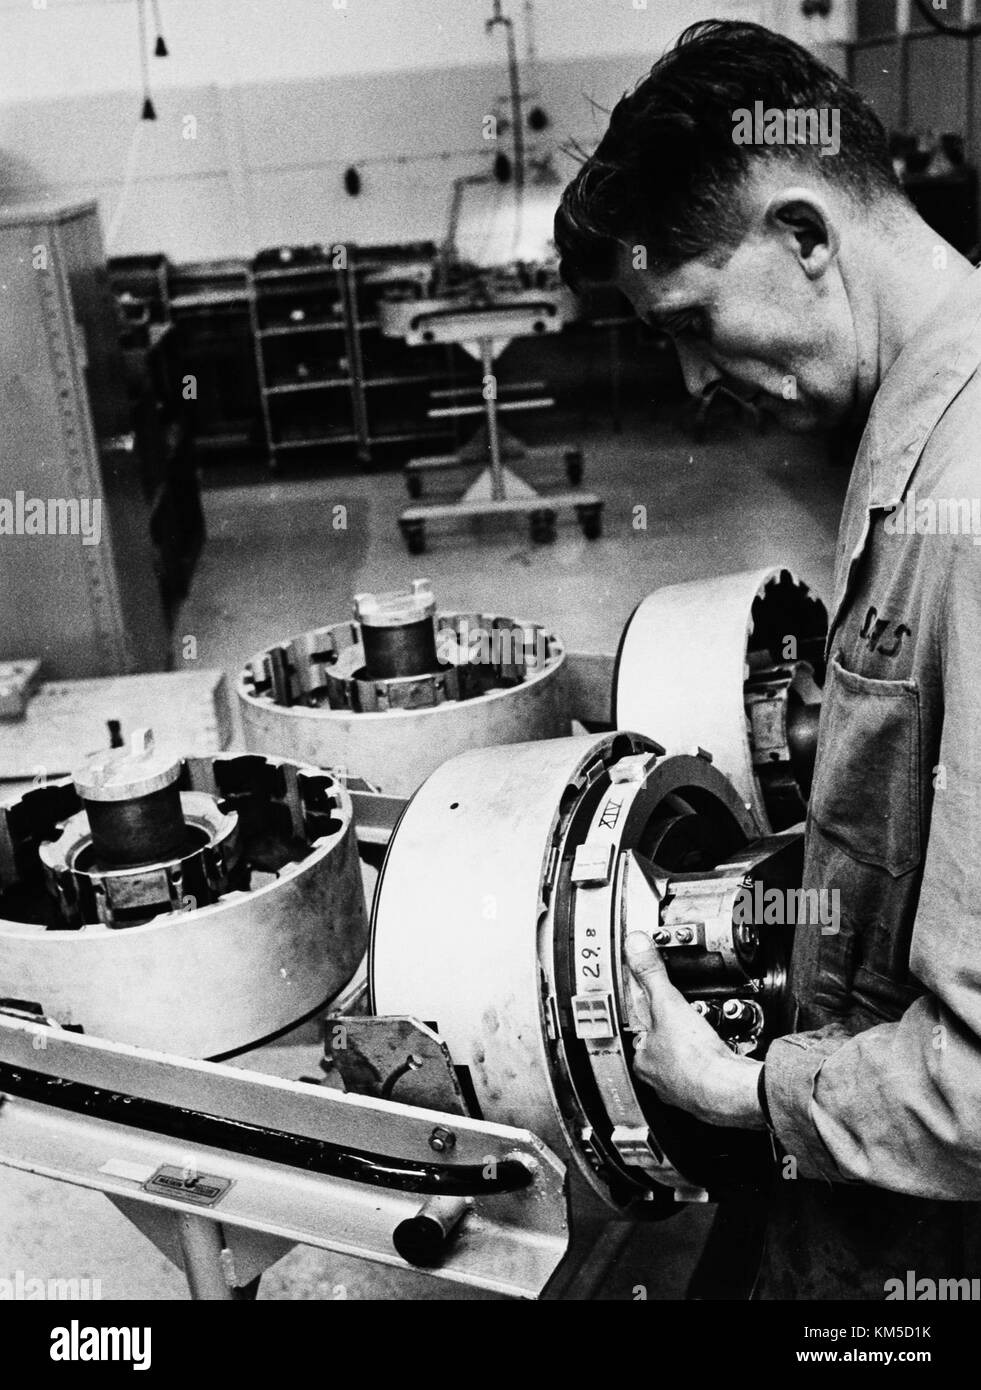 Maintenance and overhaul at Arlanda airport 1967 08 23 Hydralverkstad, the hydralic work shop for Caravelle (3) Stock Photo